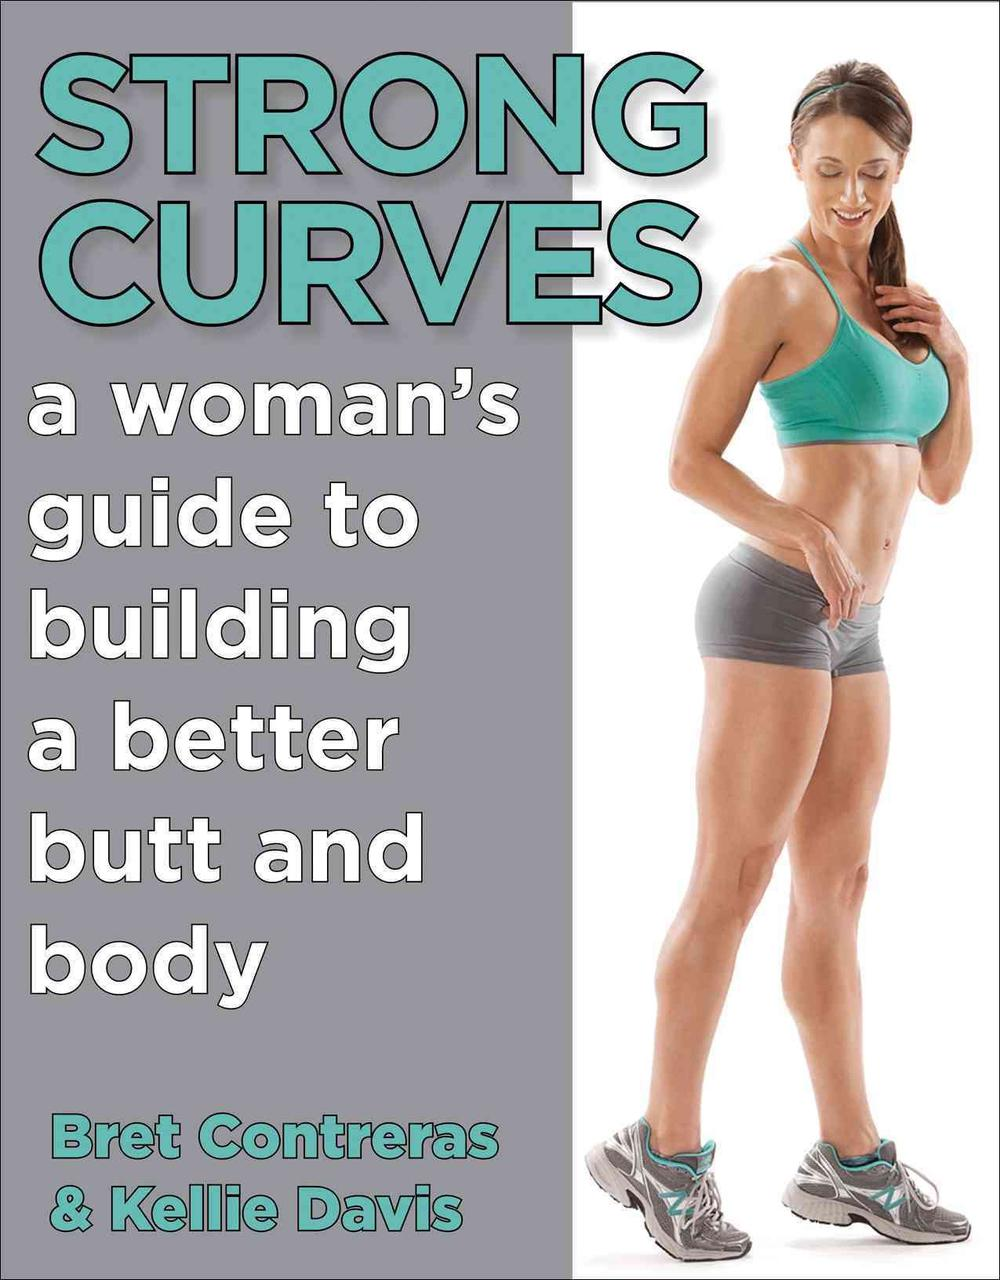 WOMAN'S GUIDE TO BUILDING